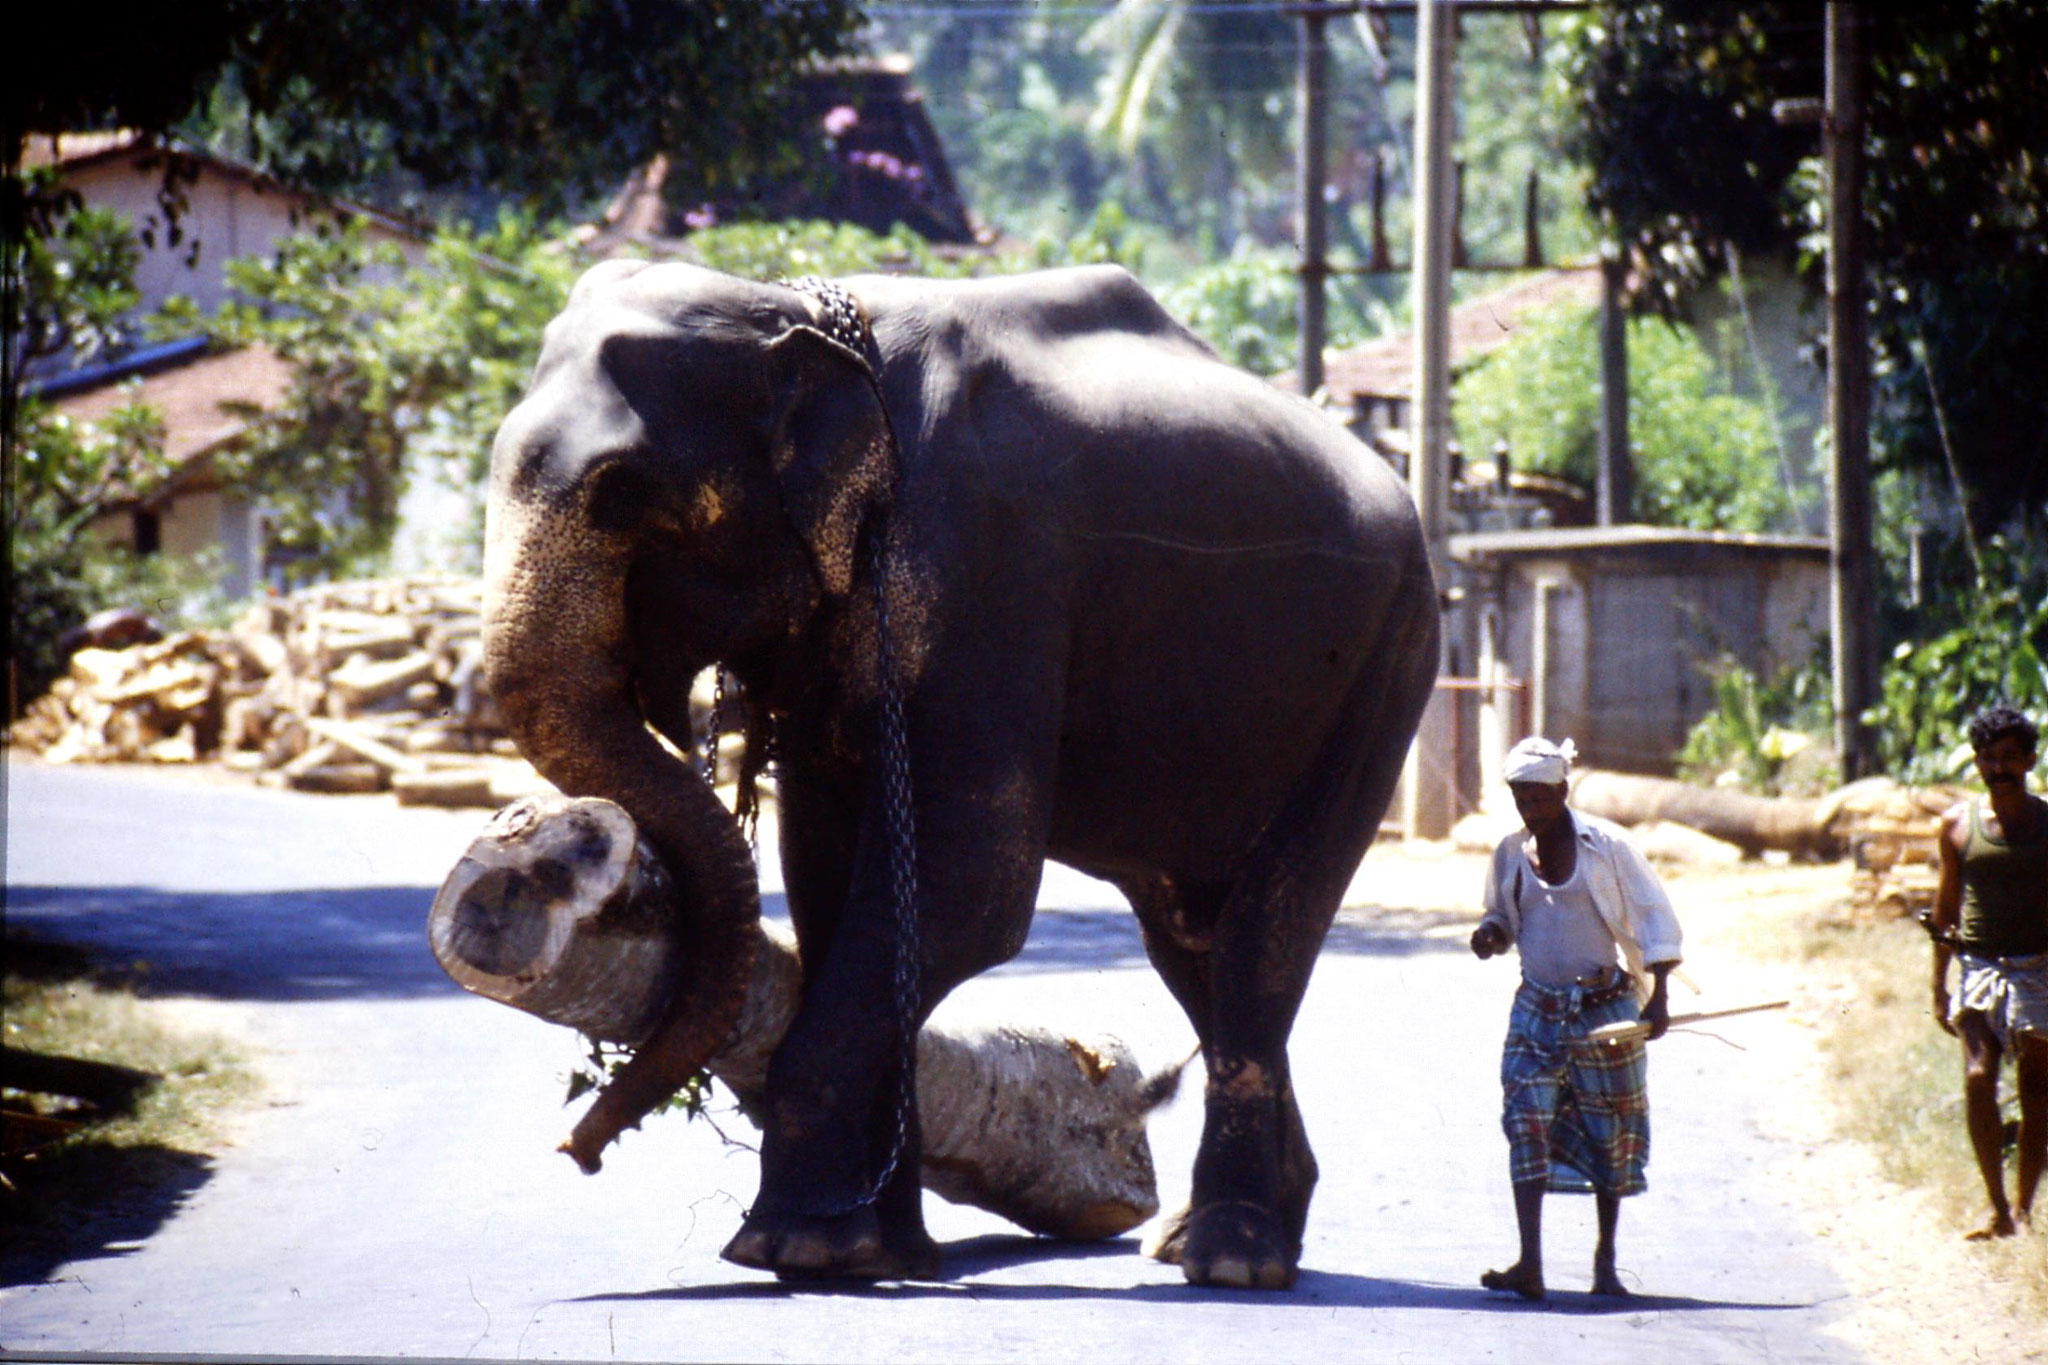 3/2/1989: 7: elephant with log crossing road